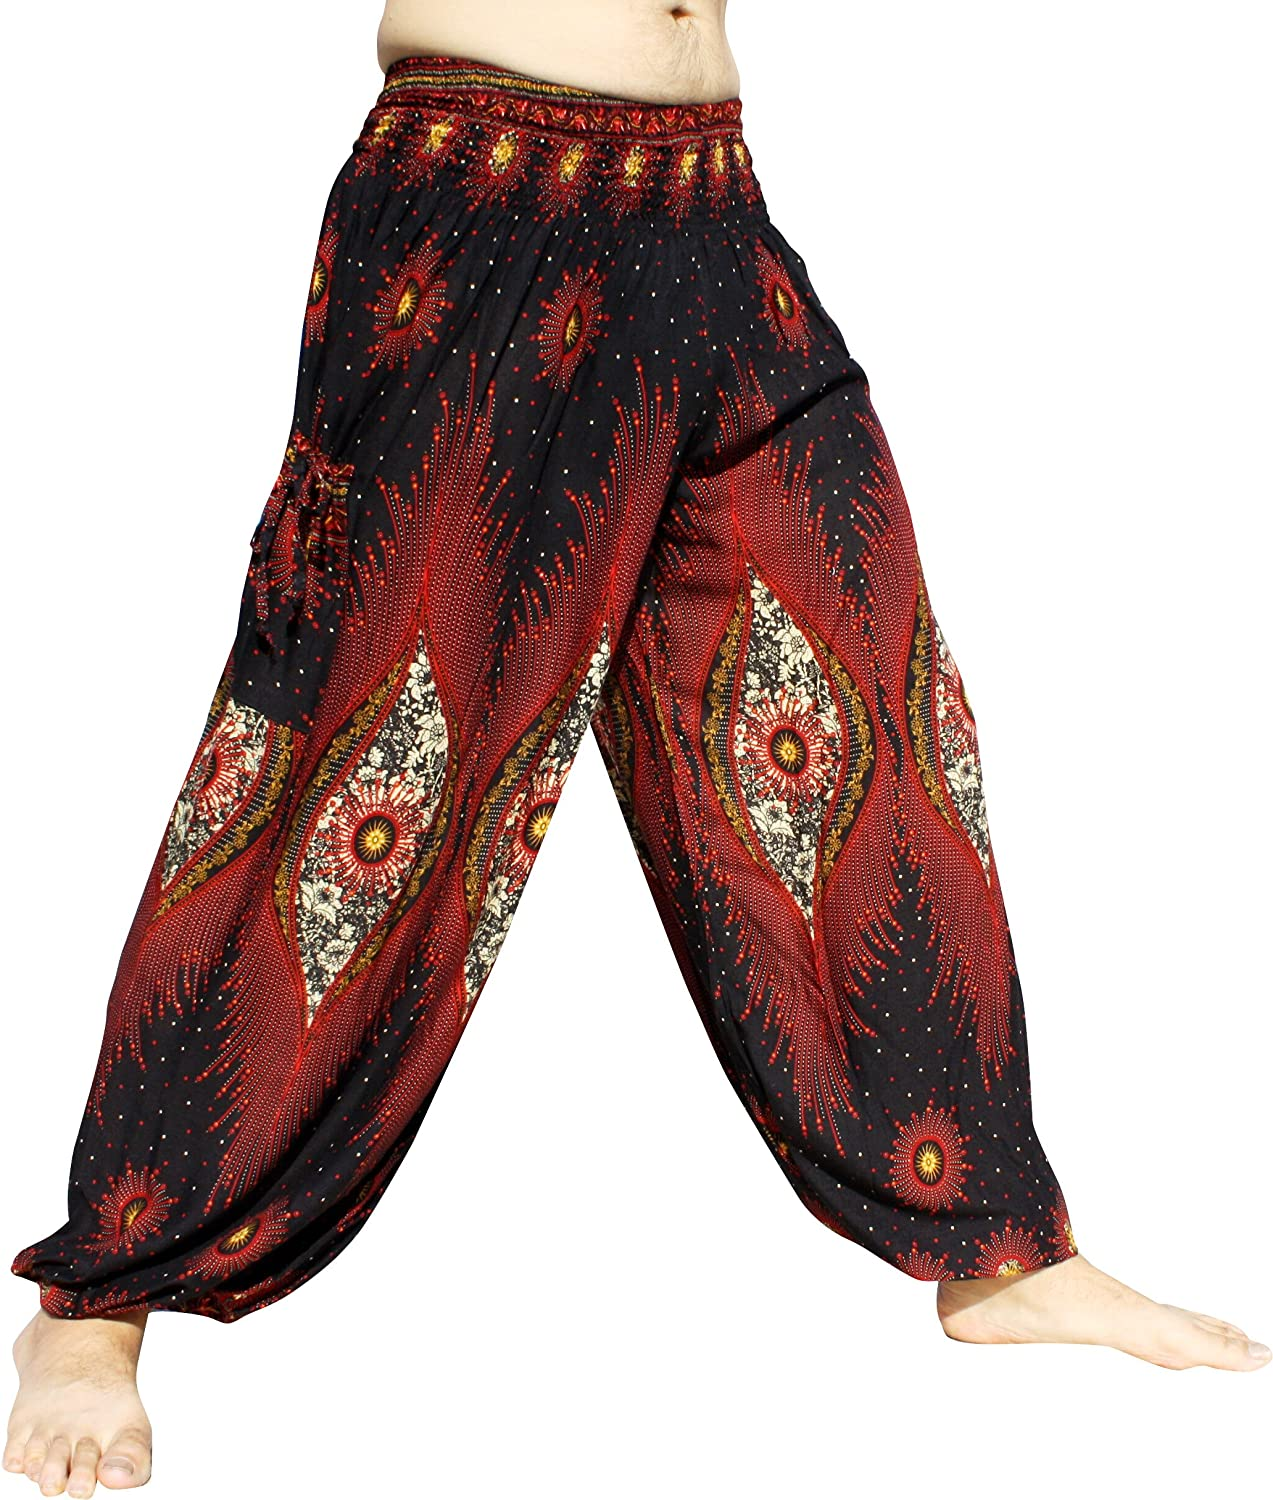 Full 4 years warranty Funk Alibaba Baggy Arabian Pants Waist Two Smock Ranking TOP11 and P with